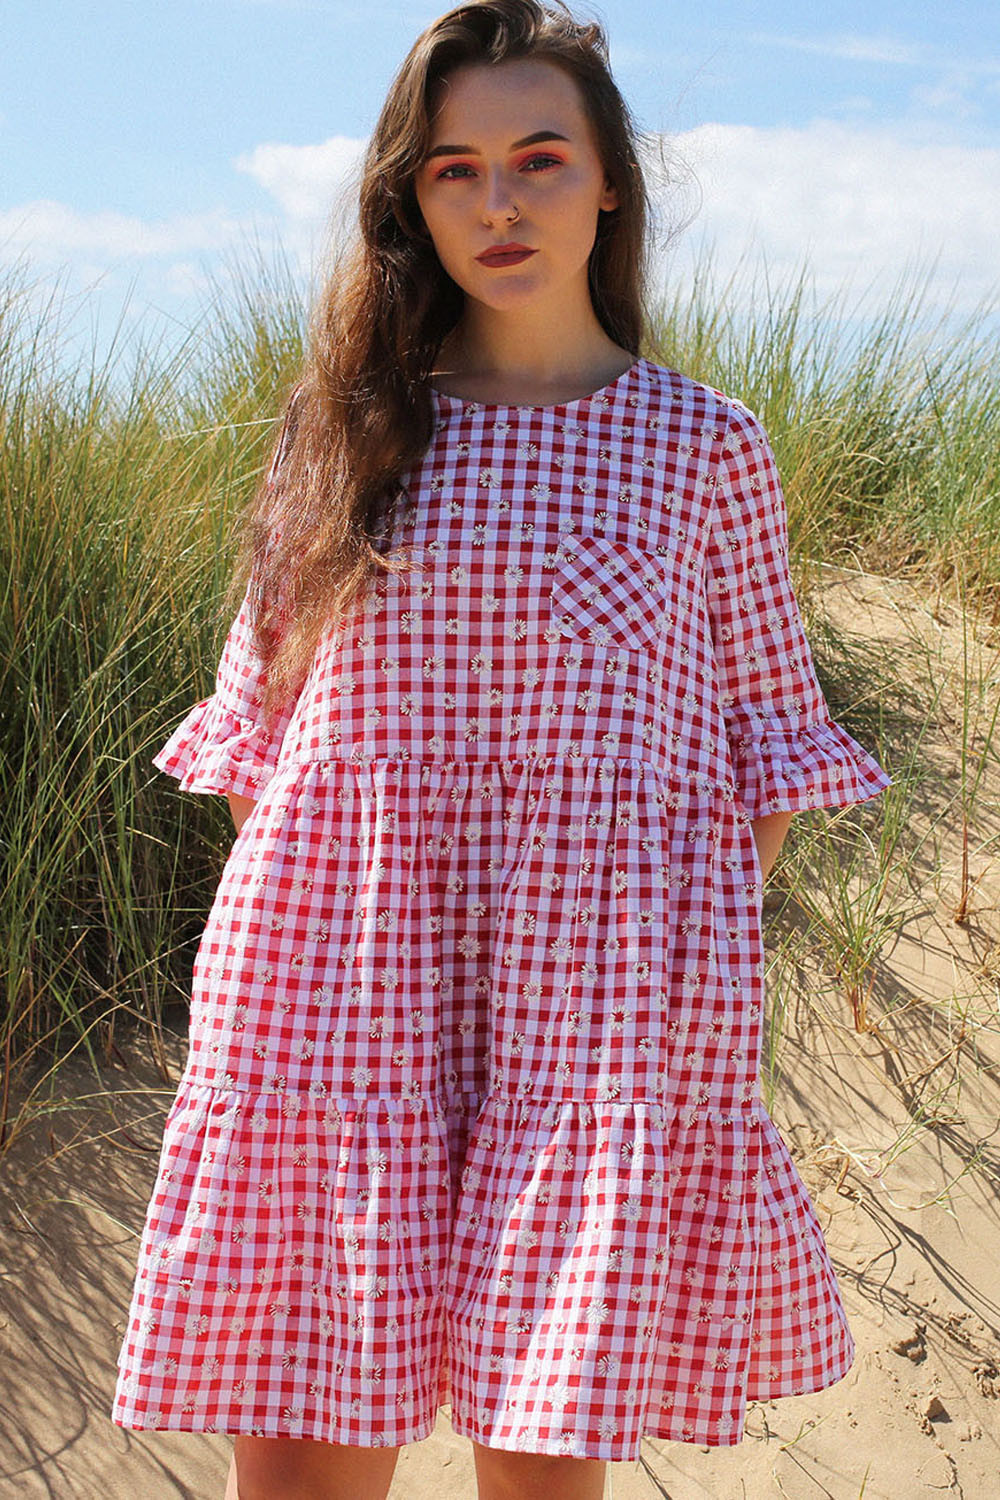 Sophie Gingham Smock Dress - Was £55 Now £33